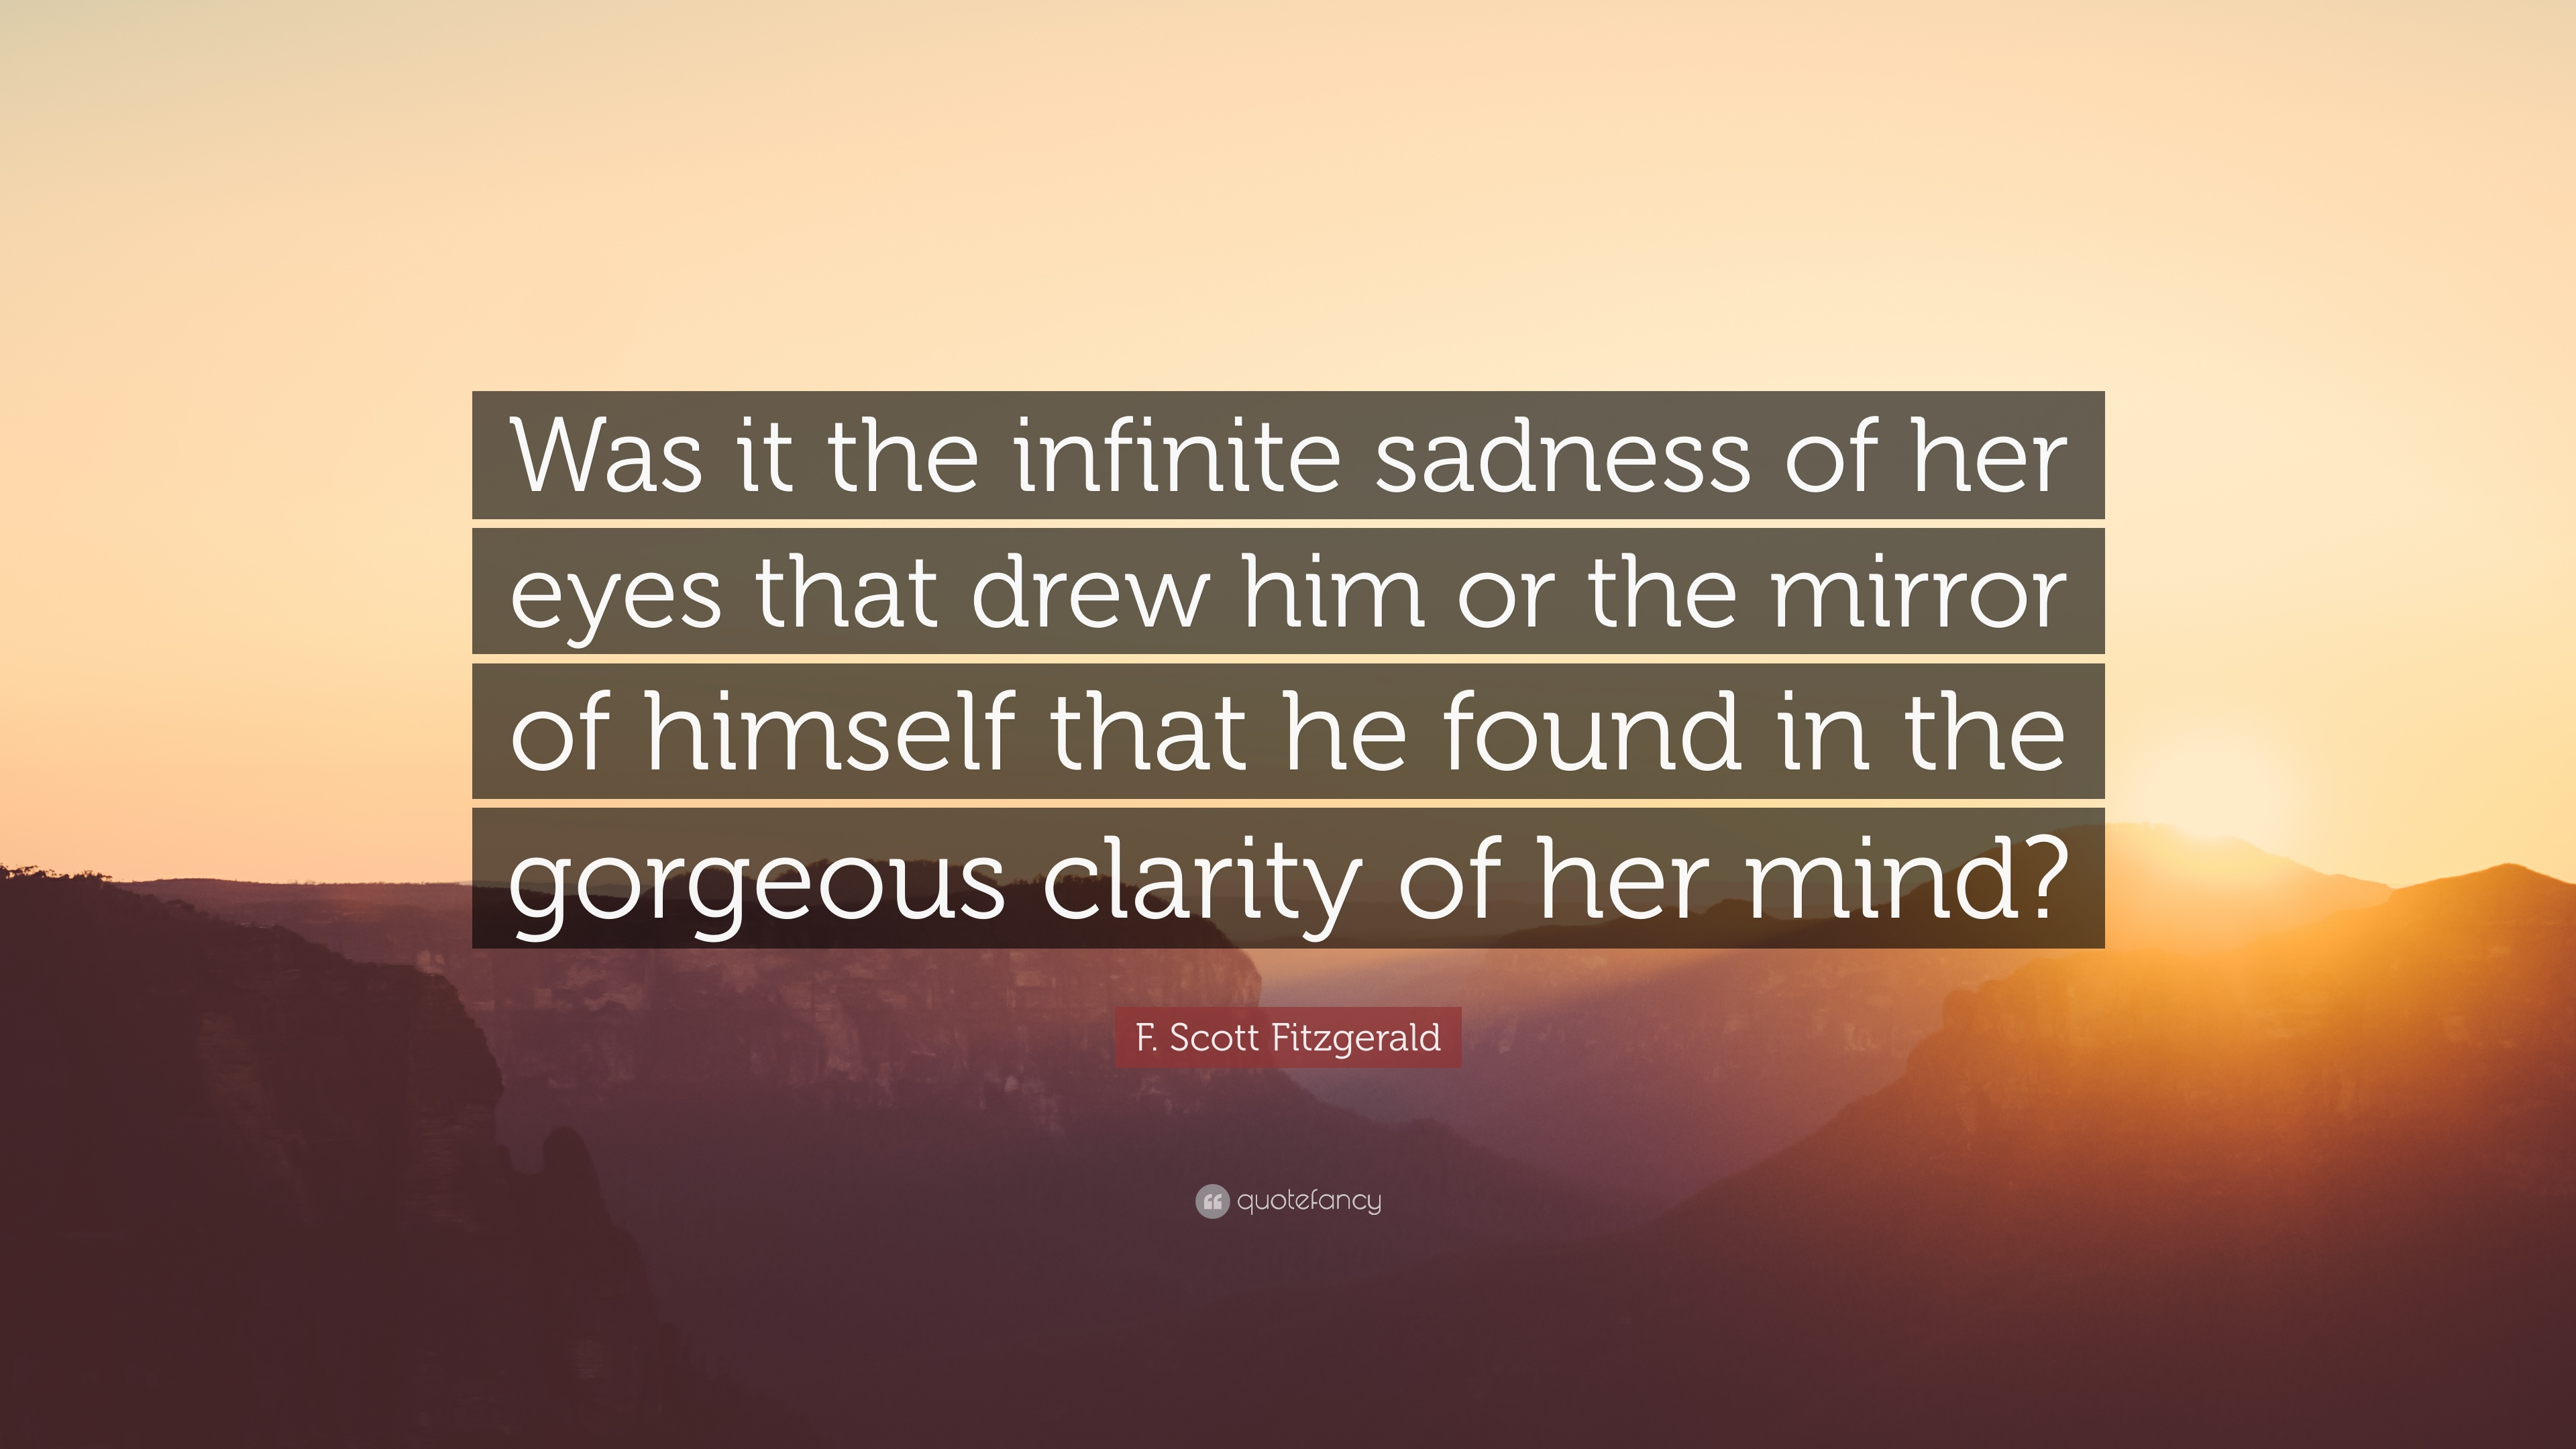 F Scott Fitzgerald Quote Was It The Infinite Sadness Of Her Eyes